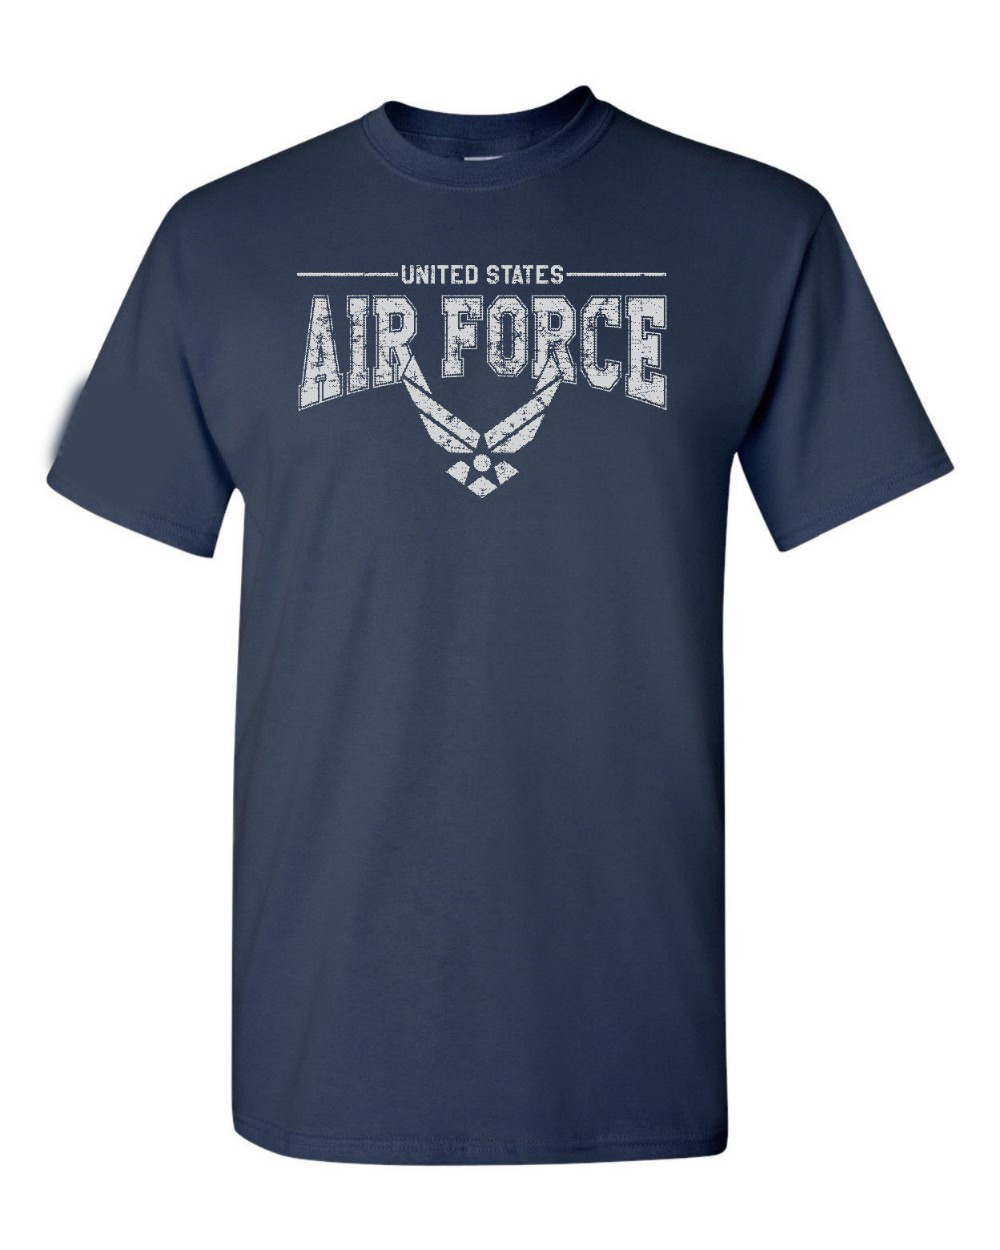 Usa Us Air Force Logo Us Flag Sleeve American Military <font><b>Usaf</b></font> Men'S Tee <font><b>Shirt</b></font> newest 2019 Fashion Summer Short Sleeves Cotton Tee image